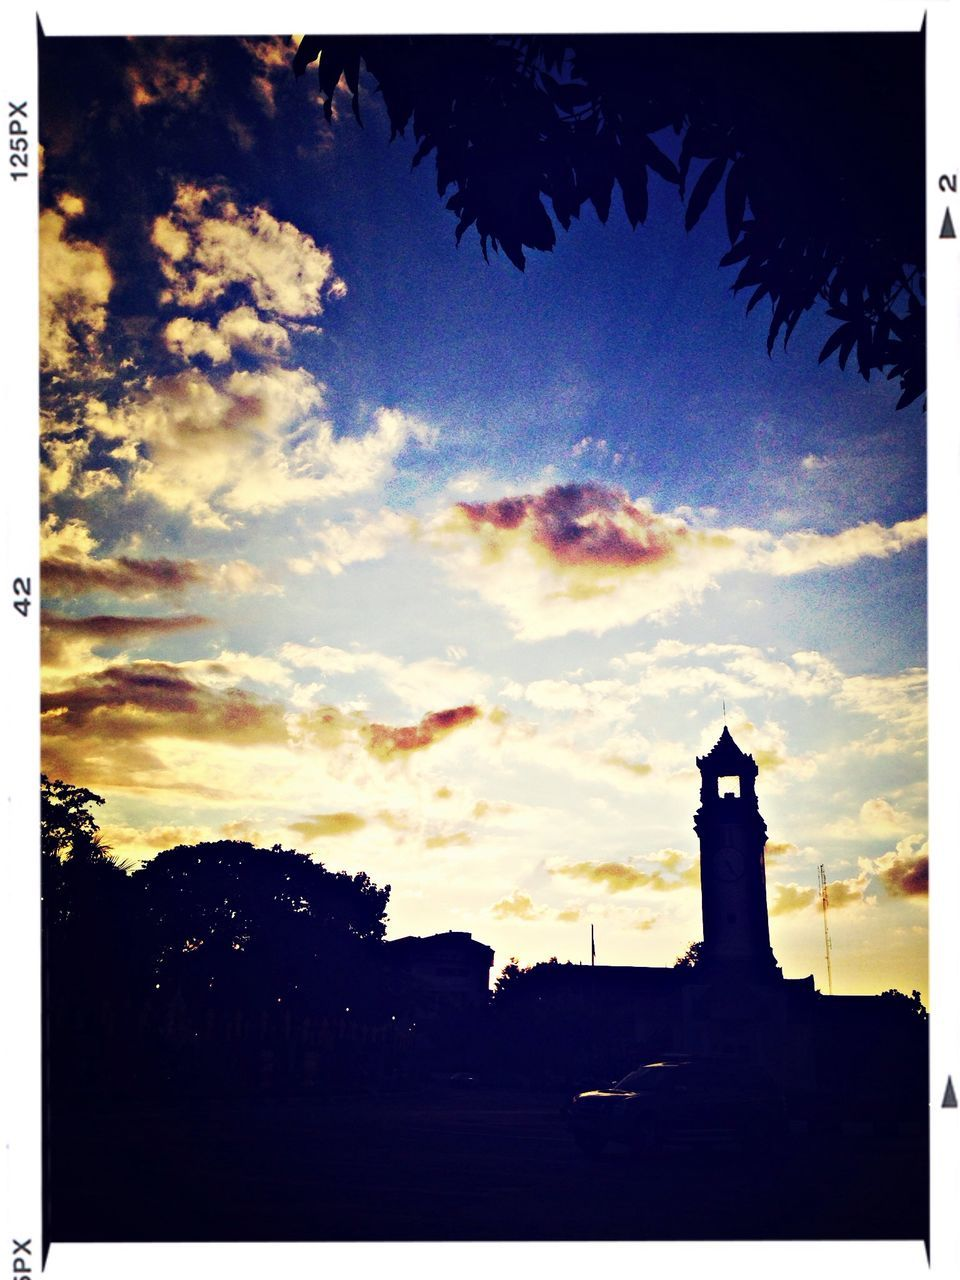 silhouette, sky, no people, outdoors, sunset, cloud - sky, statue, nature, building exterior, tree, architecture, day